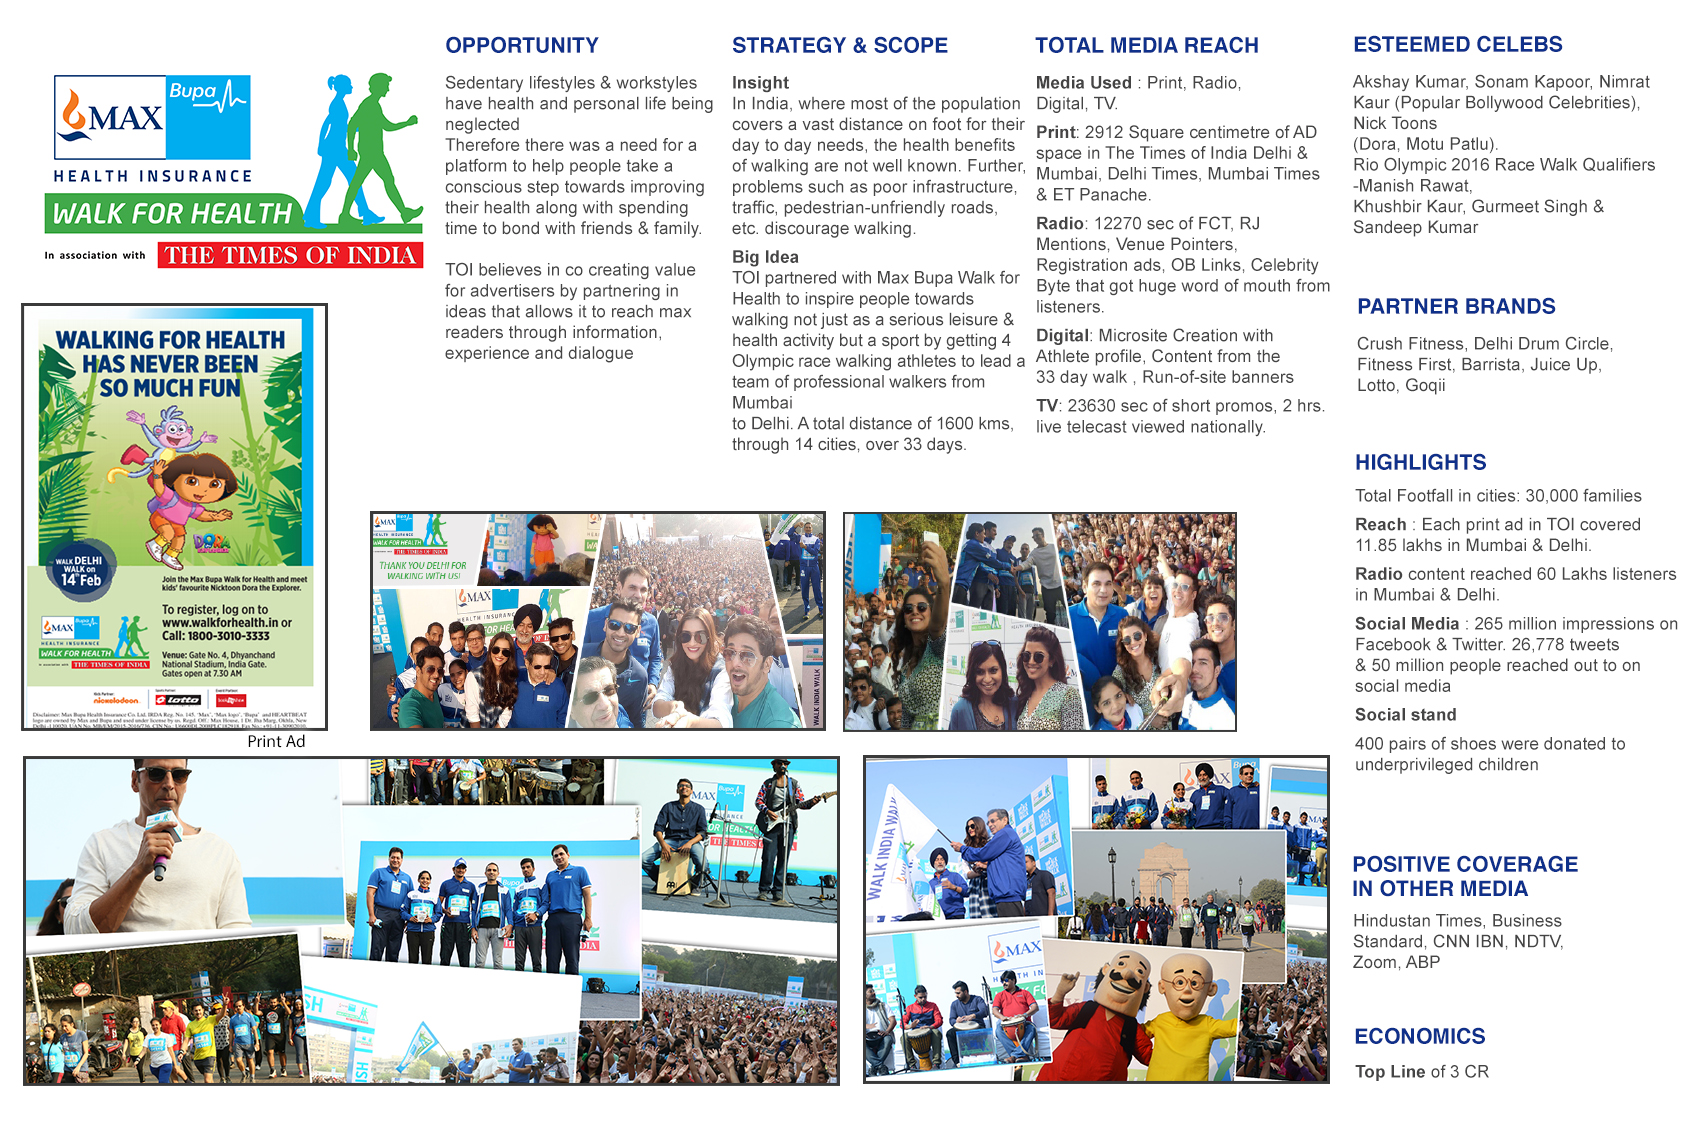 Max Bupa Walk for Health in association with The Times of India